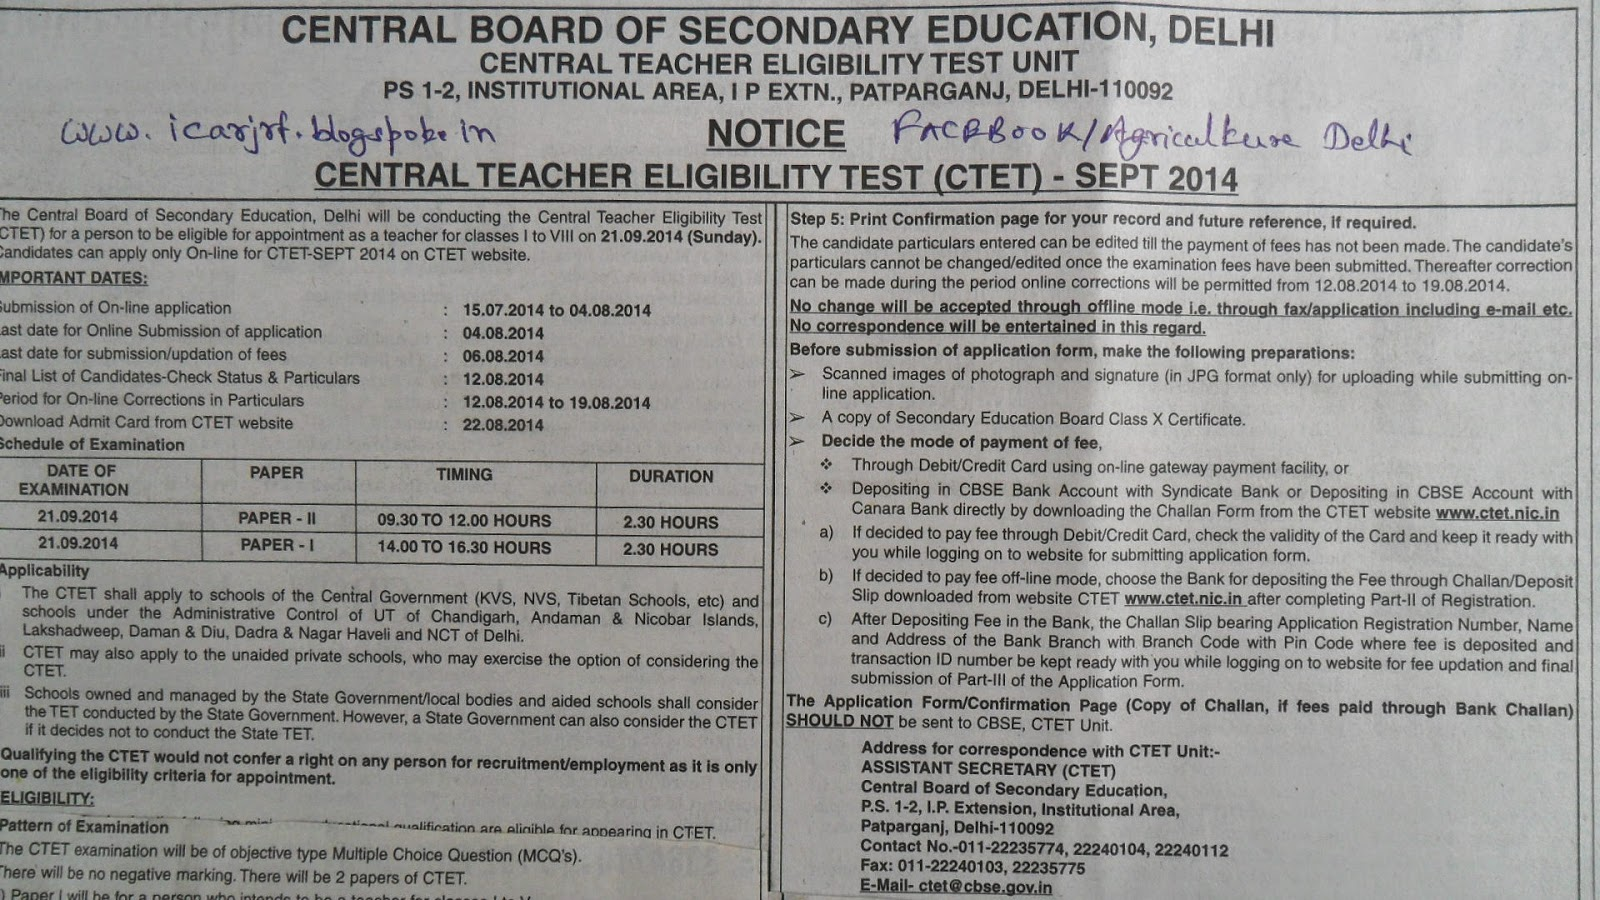 manipur state teacher eligibility test Manipur tet 2015 2016 result,board of secondary education manipur (bsem) tet 2015 2016, manipur tet, bsemnicin ,manipur teacher eligibility test (bsem tet) exam date notification of bsem tet 2015 2016 paper i and paper ii for upper primary (class vi to viii) and lower primary (class i to v) teachers recruitment,teacher eligibility test.